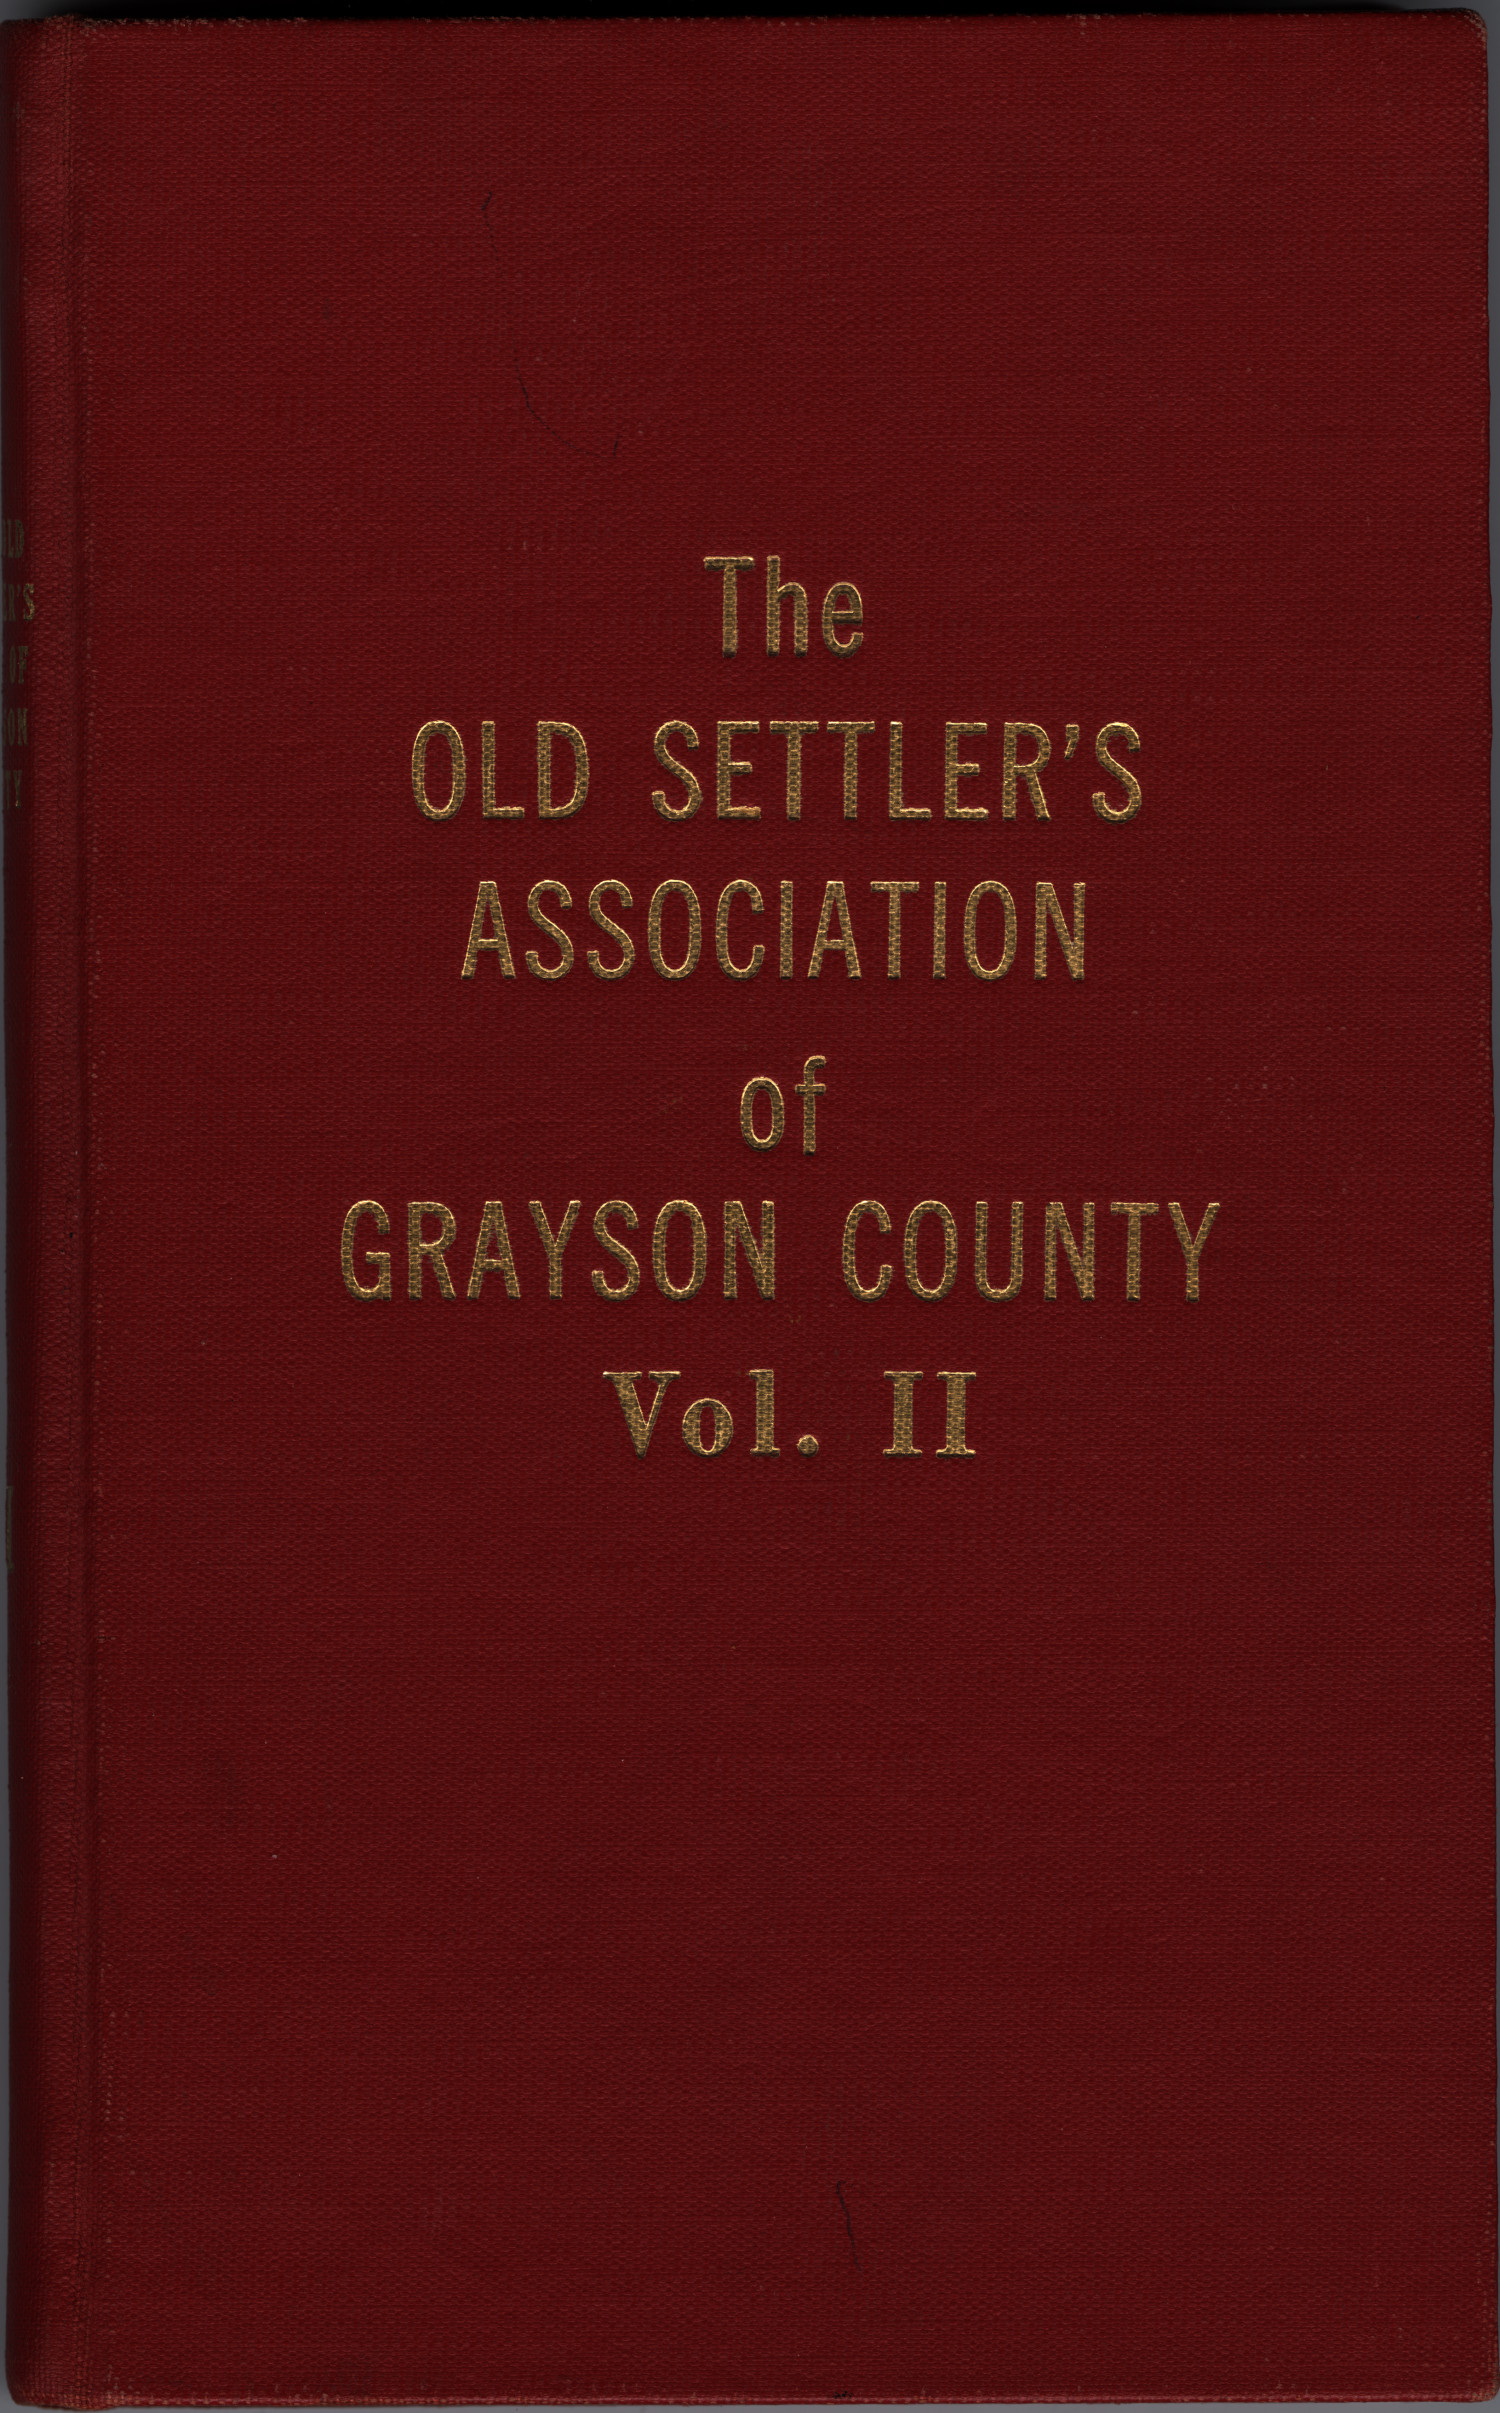 The Old Settler's Association of Grayson County, Vol. 2.                                                                                                      [Sequence #]: 1 of 280